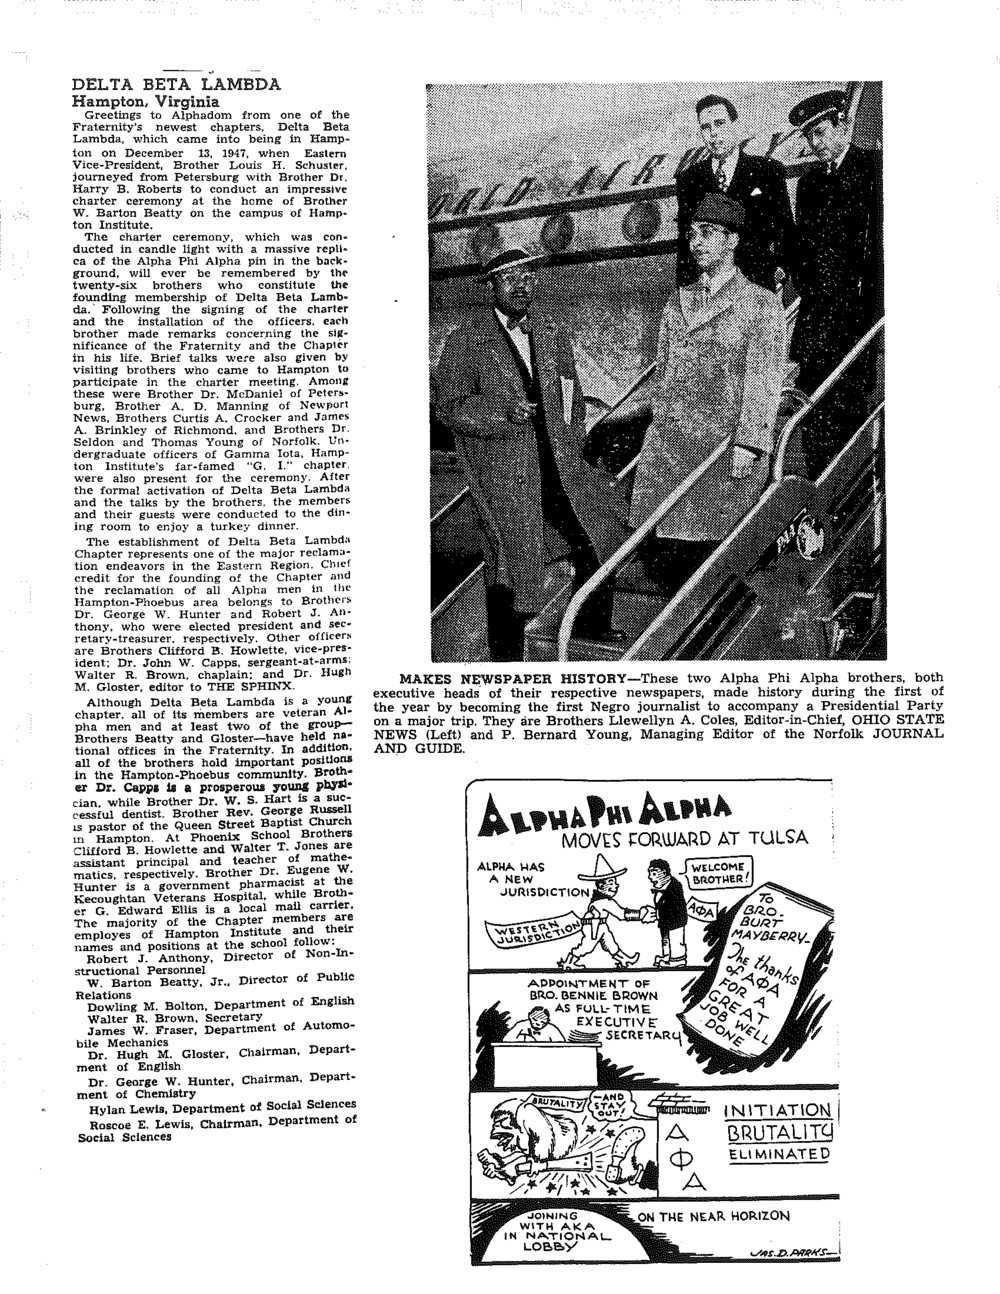 Zeta Lambda 1947 Newspaper Heads and DBL.png